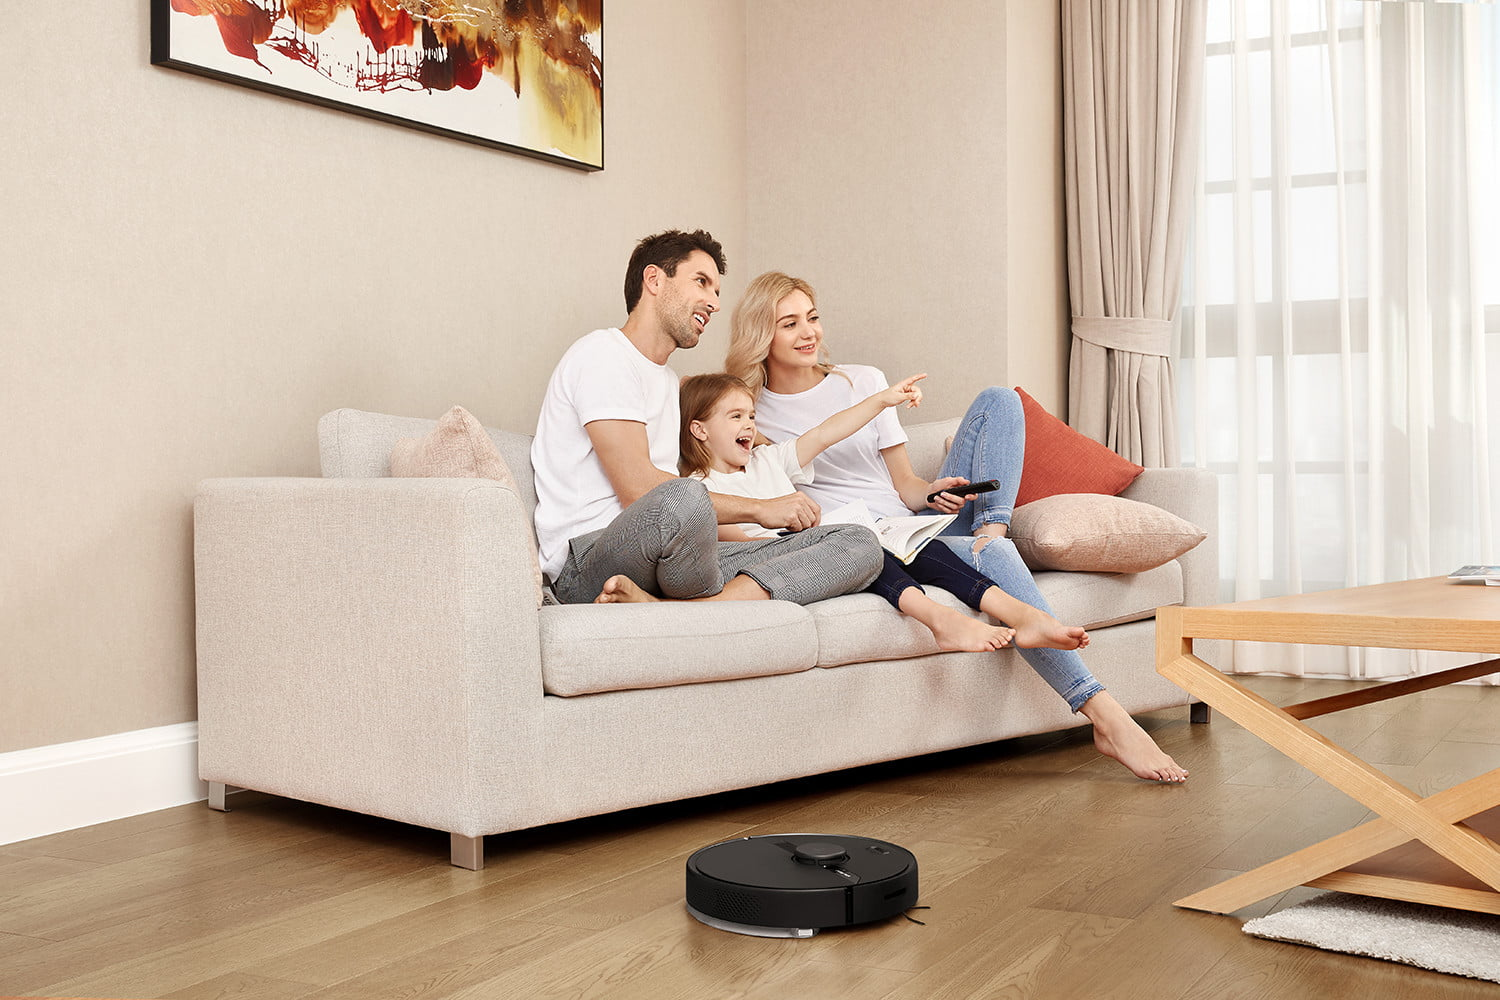 Advisable low cost robotic vacuum offers wanted for August 2021: Roomba, Eufy, Deebot